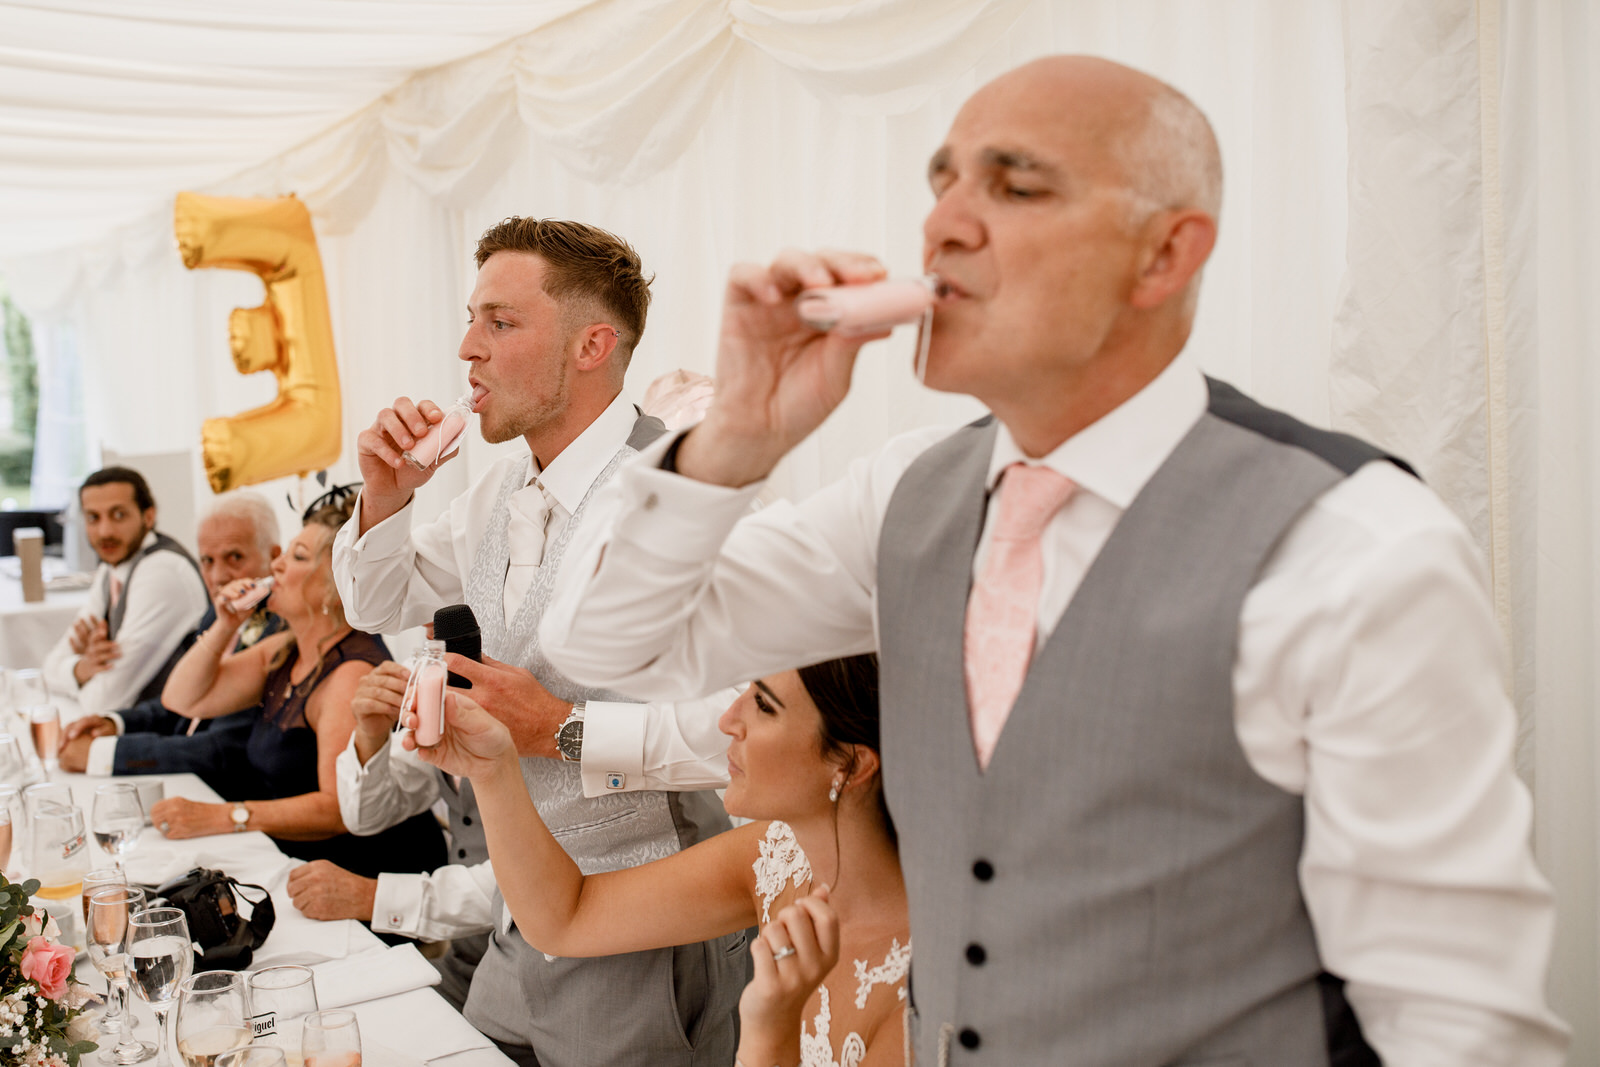 groom downing a shot